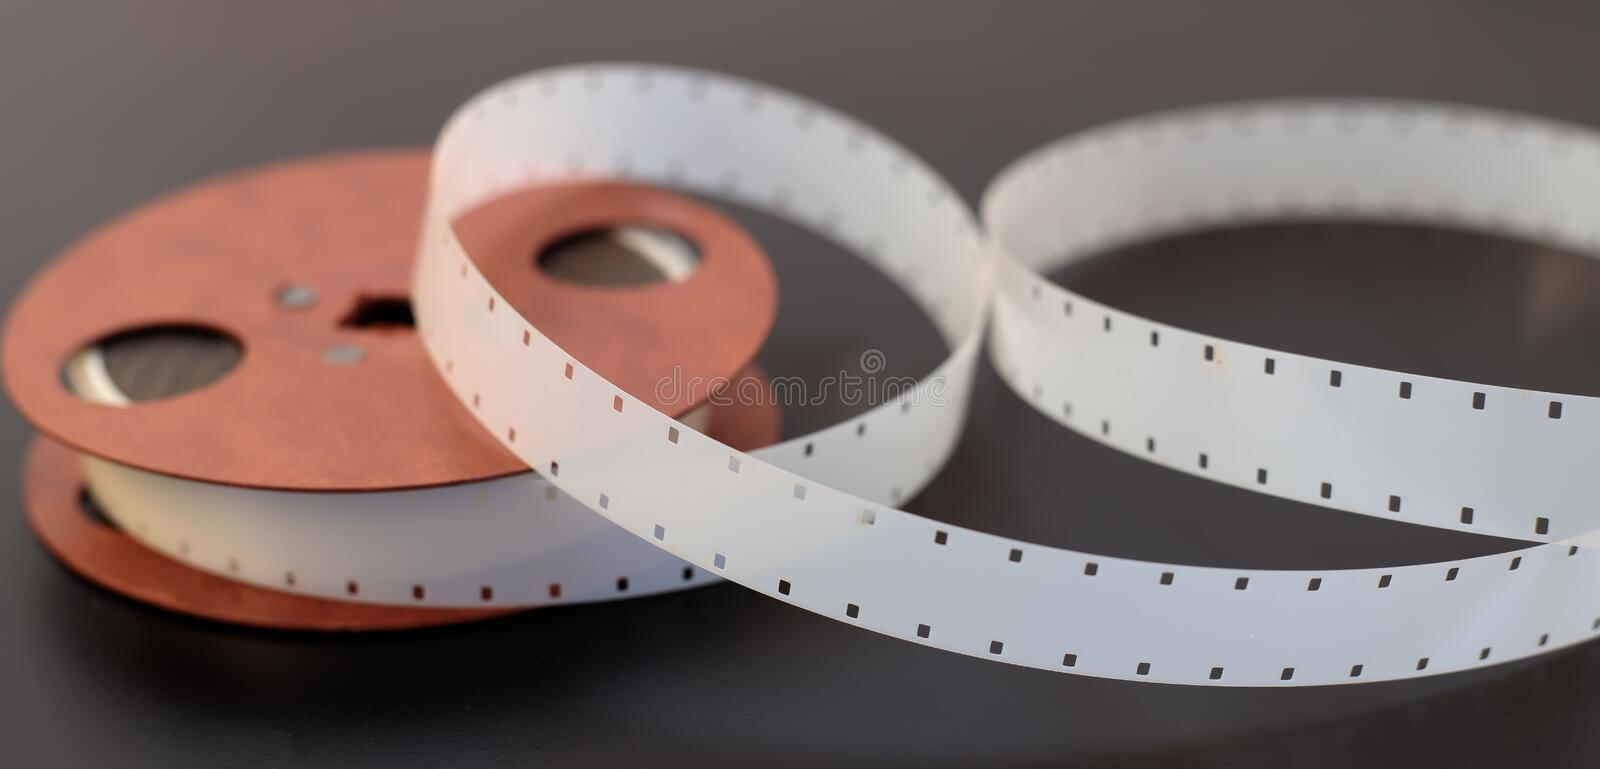 16mm film reel stock photography